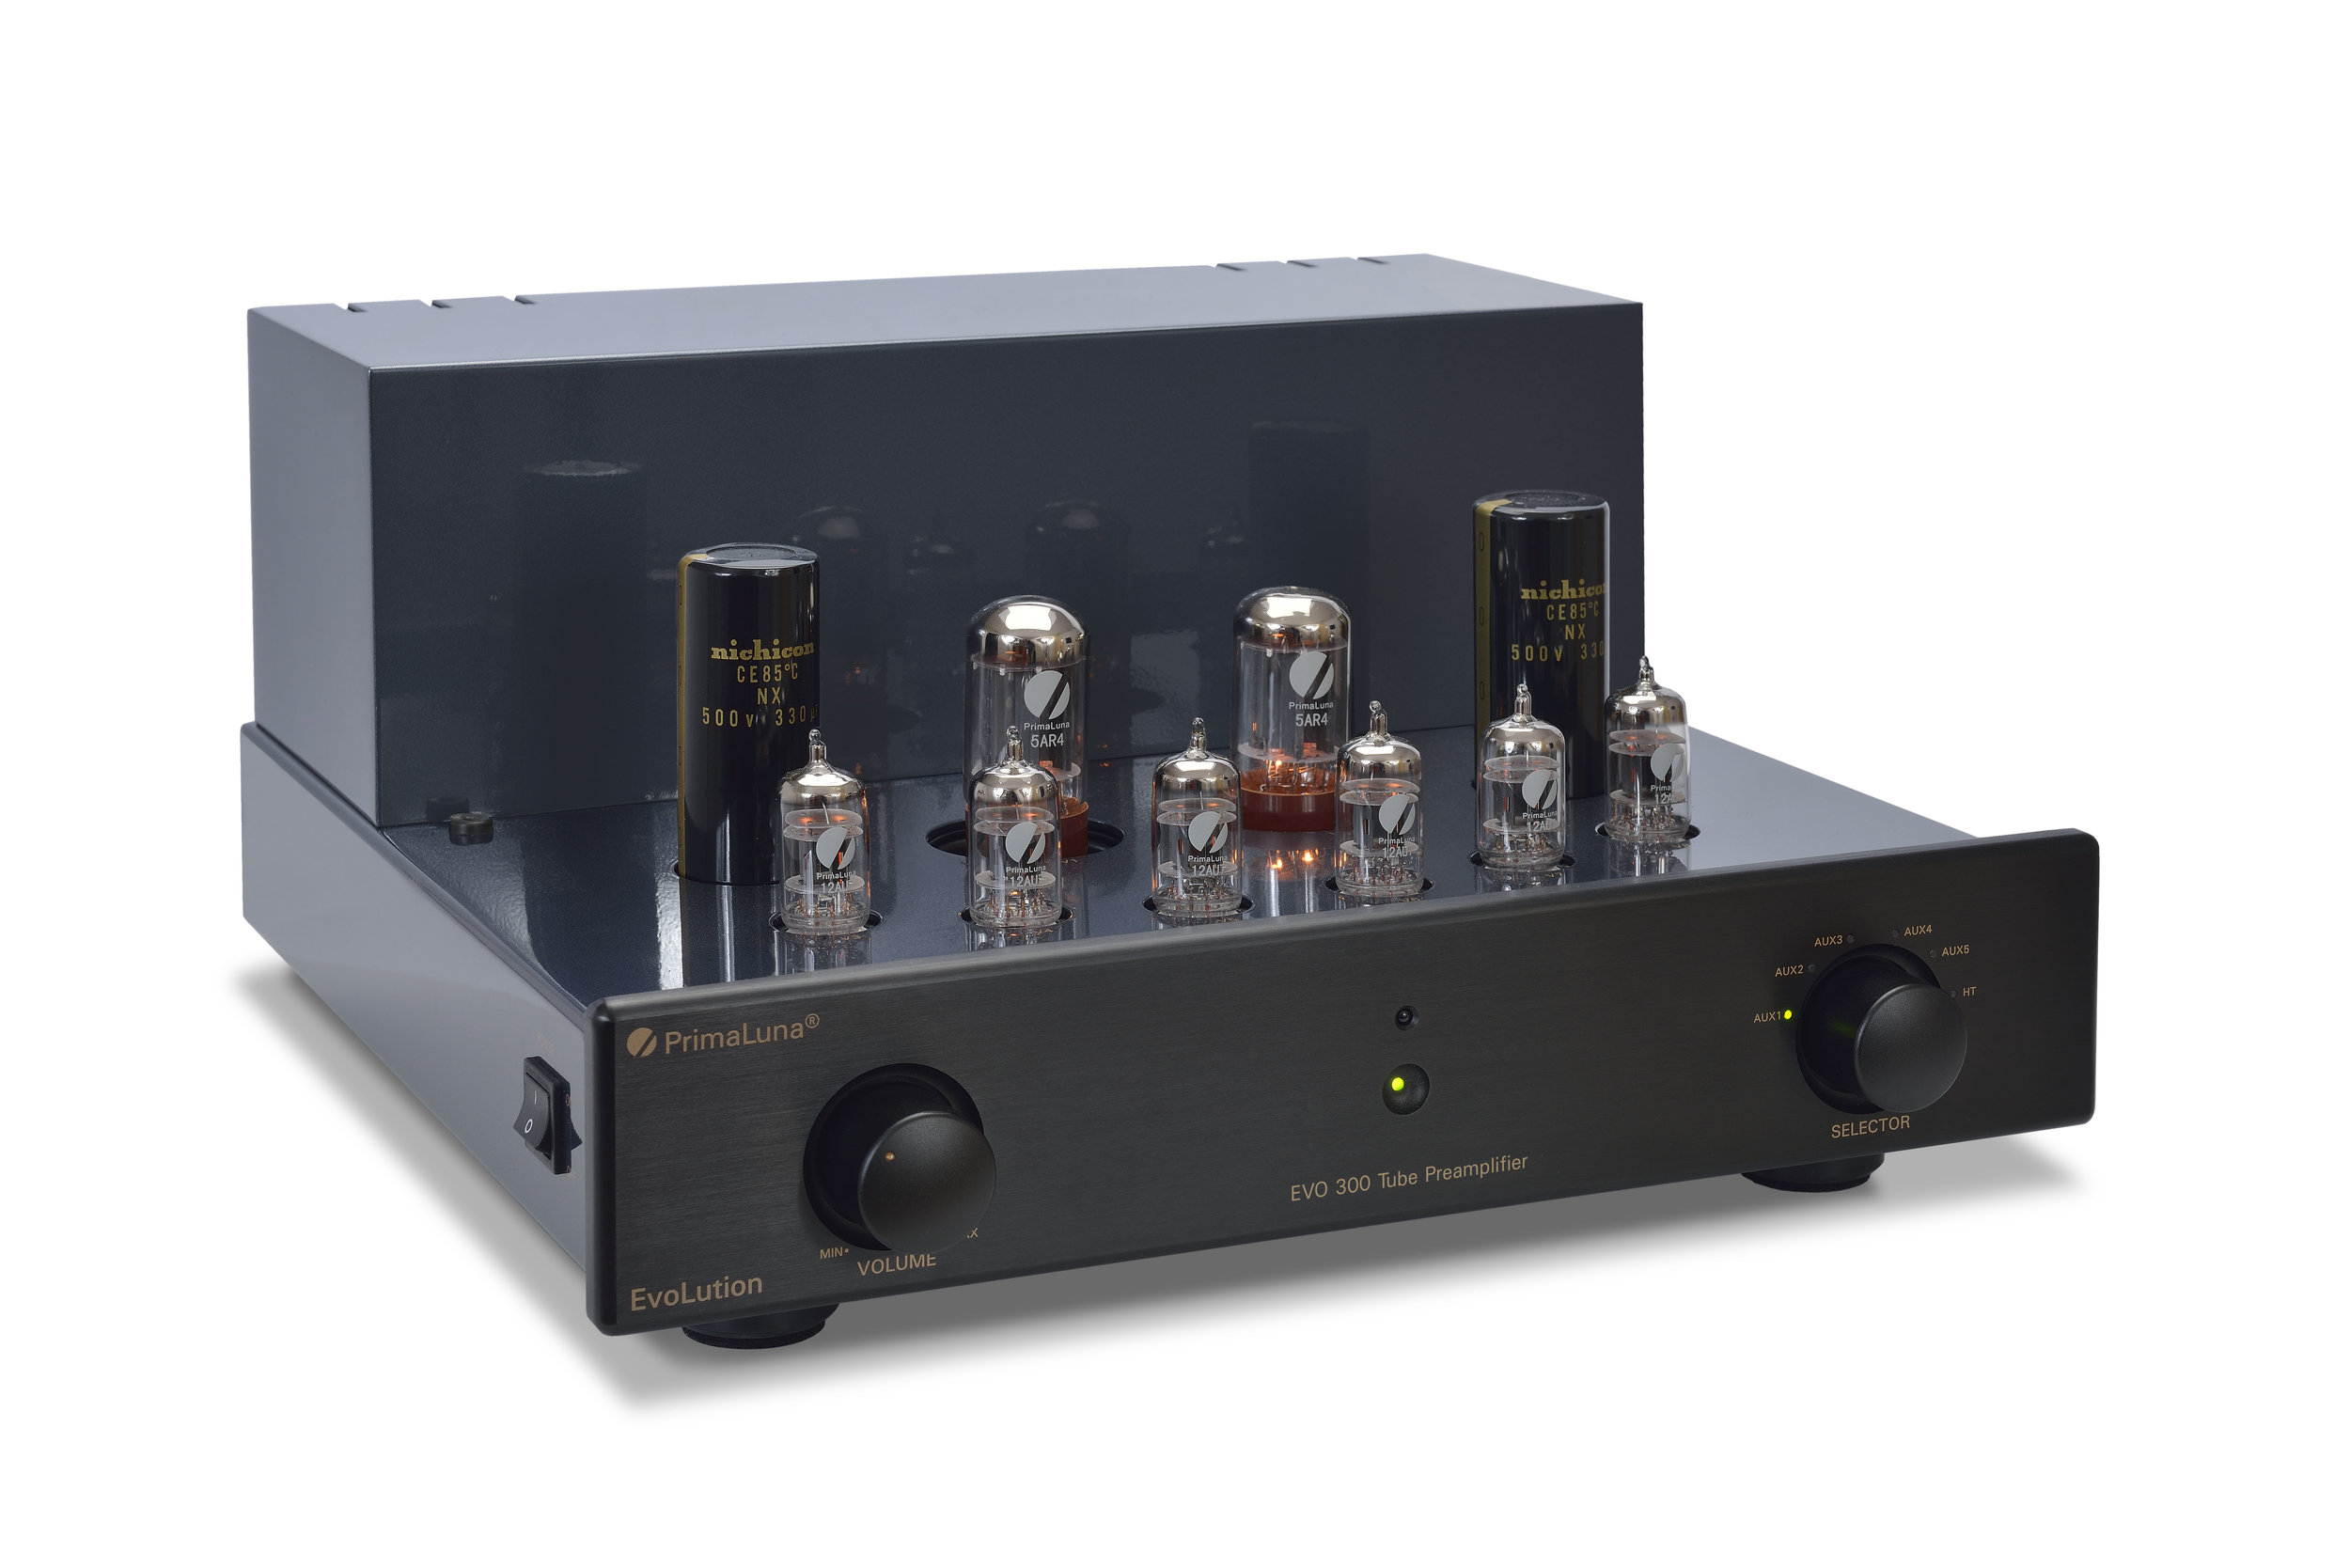 004b - PrimaLuna Evo 300 Tube Preamplifier - black - slanted - without cage - white background.jpg